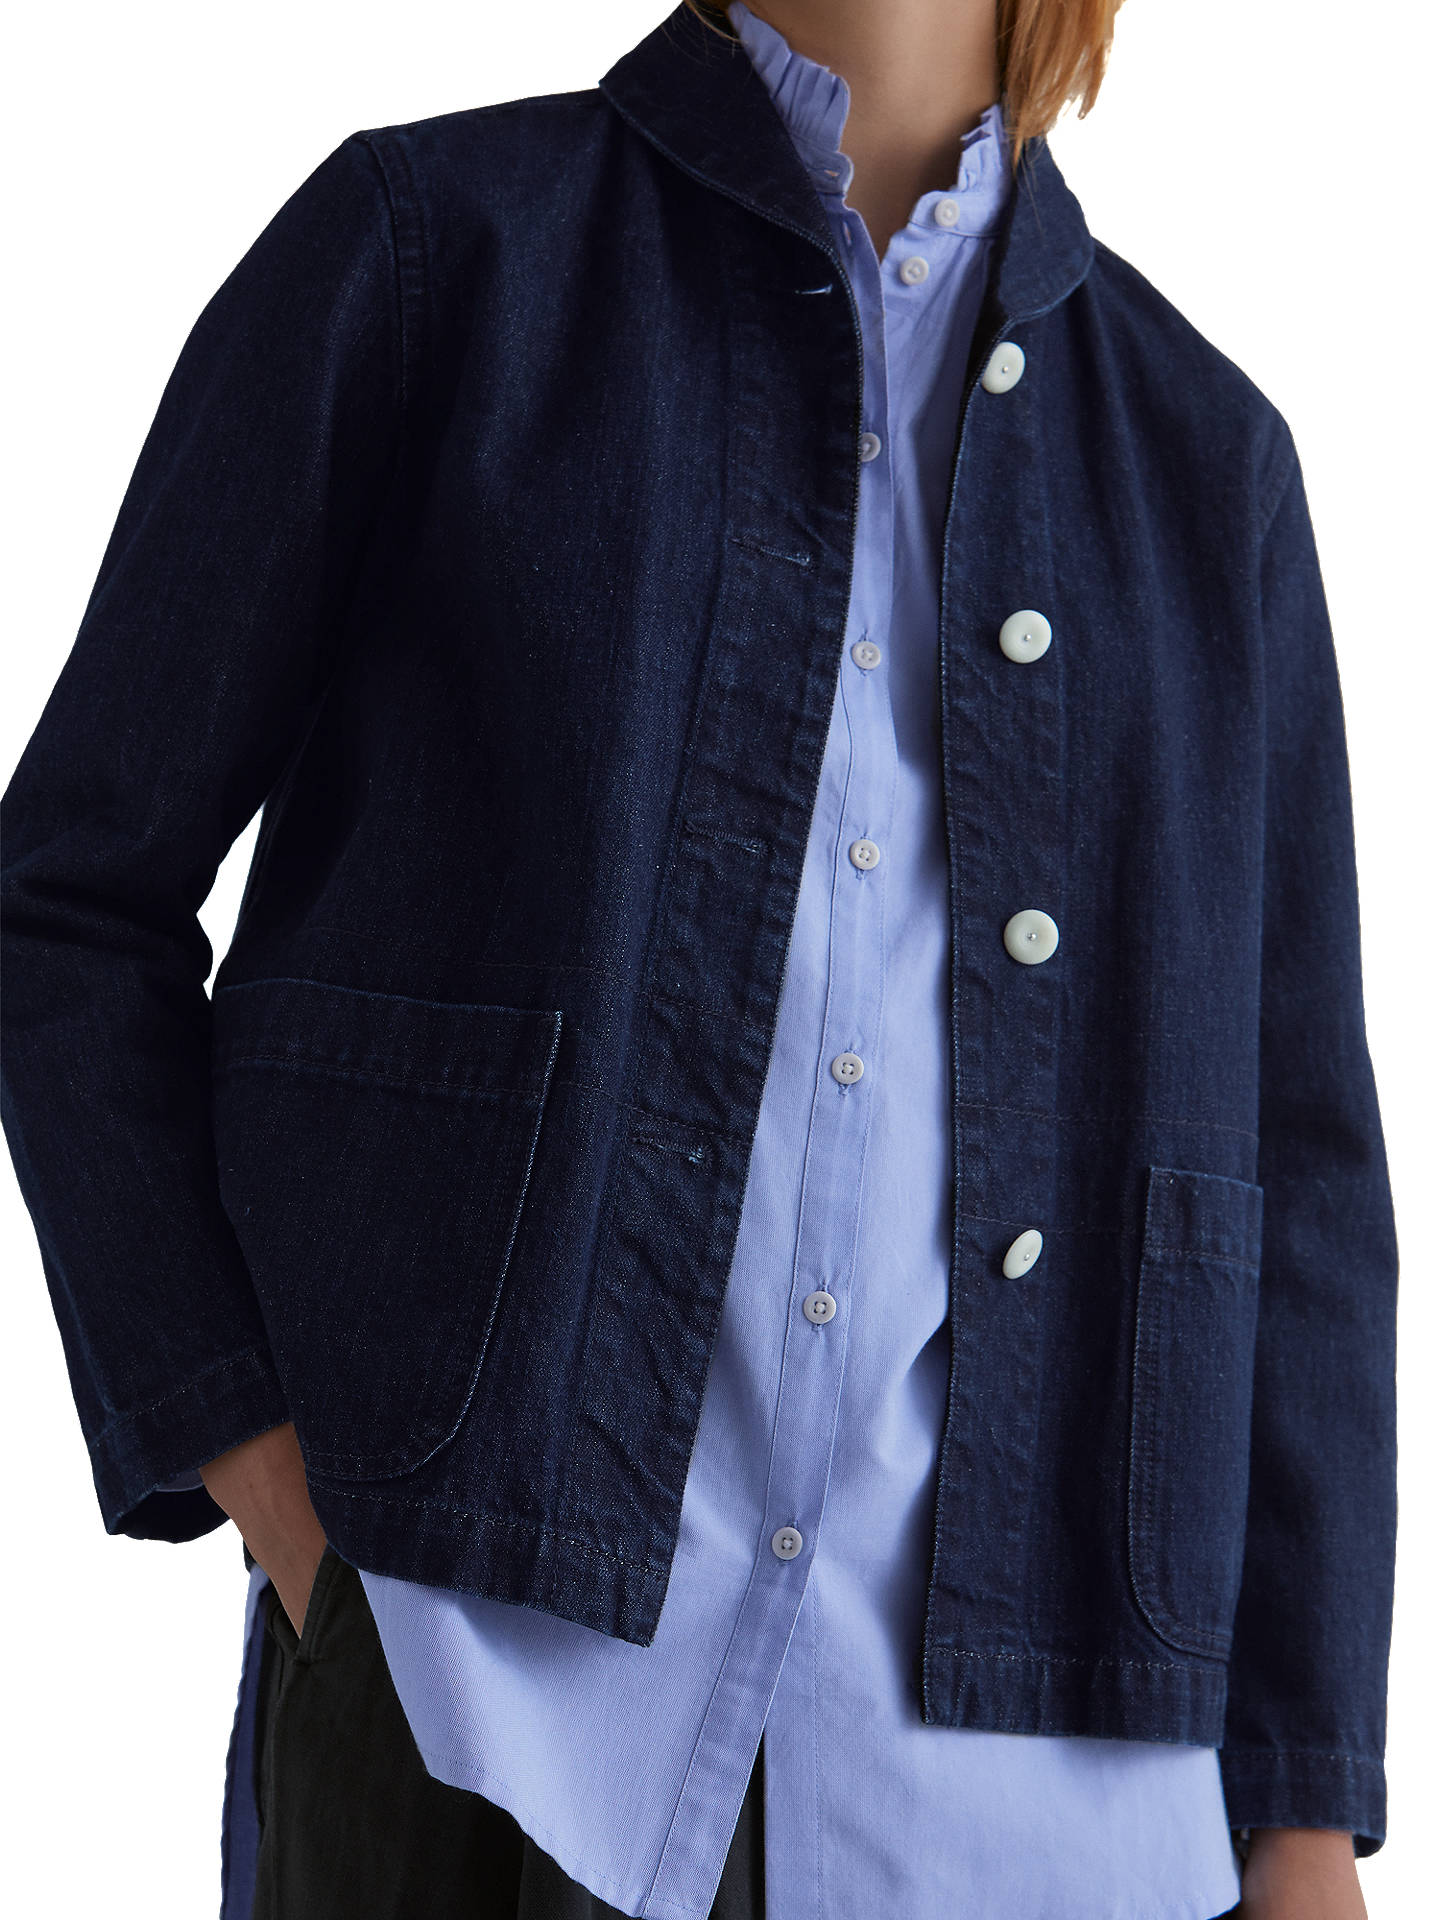 BuyToast Denim Workwear Jacket, Indigo, 8 Online at johnlewis.com